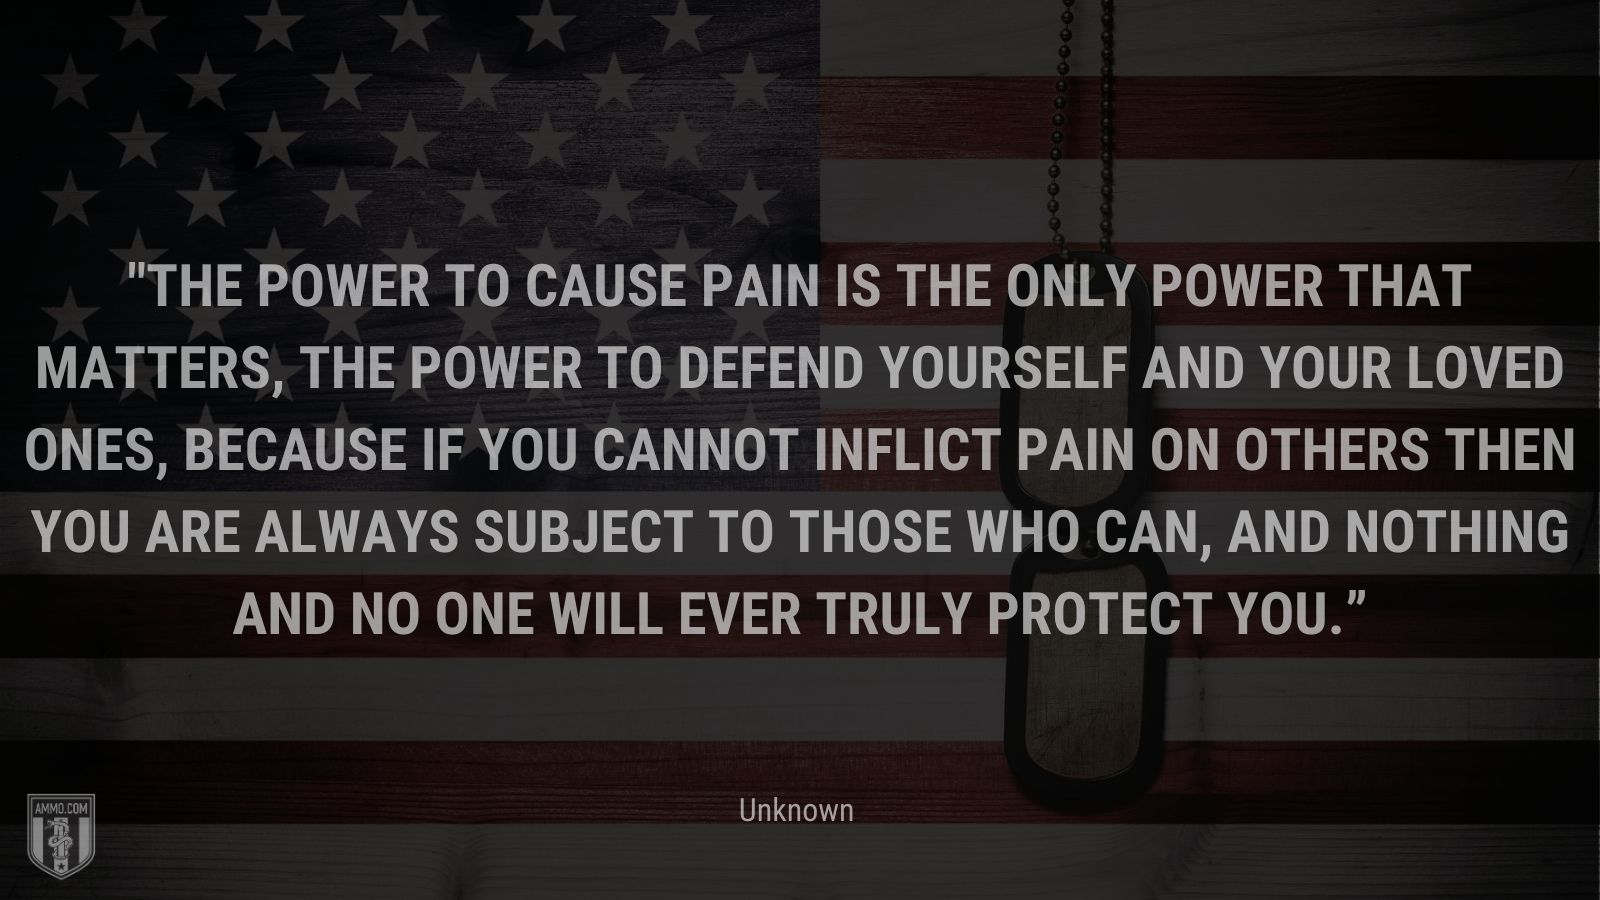 """""""The power to cause pain is the only power that matters, the power to defend yourself and your loved ones, because if you cannot inflict pain on others then you are always subject to those who can, and nothing and no one will ever truly protect you."""" - Unknown"""